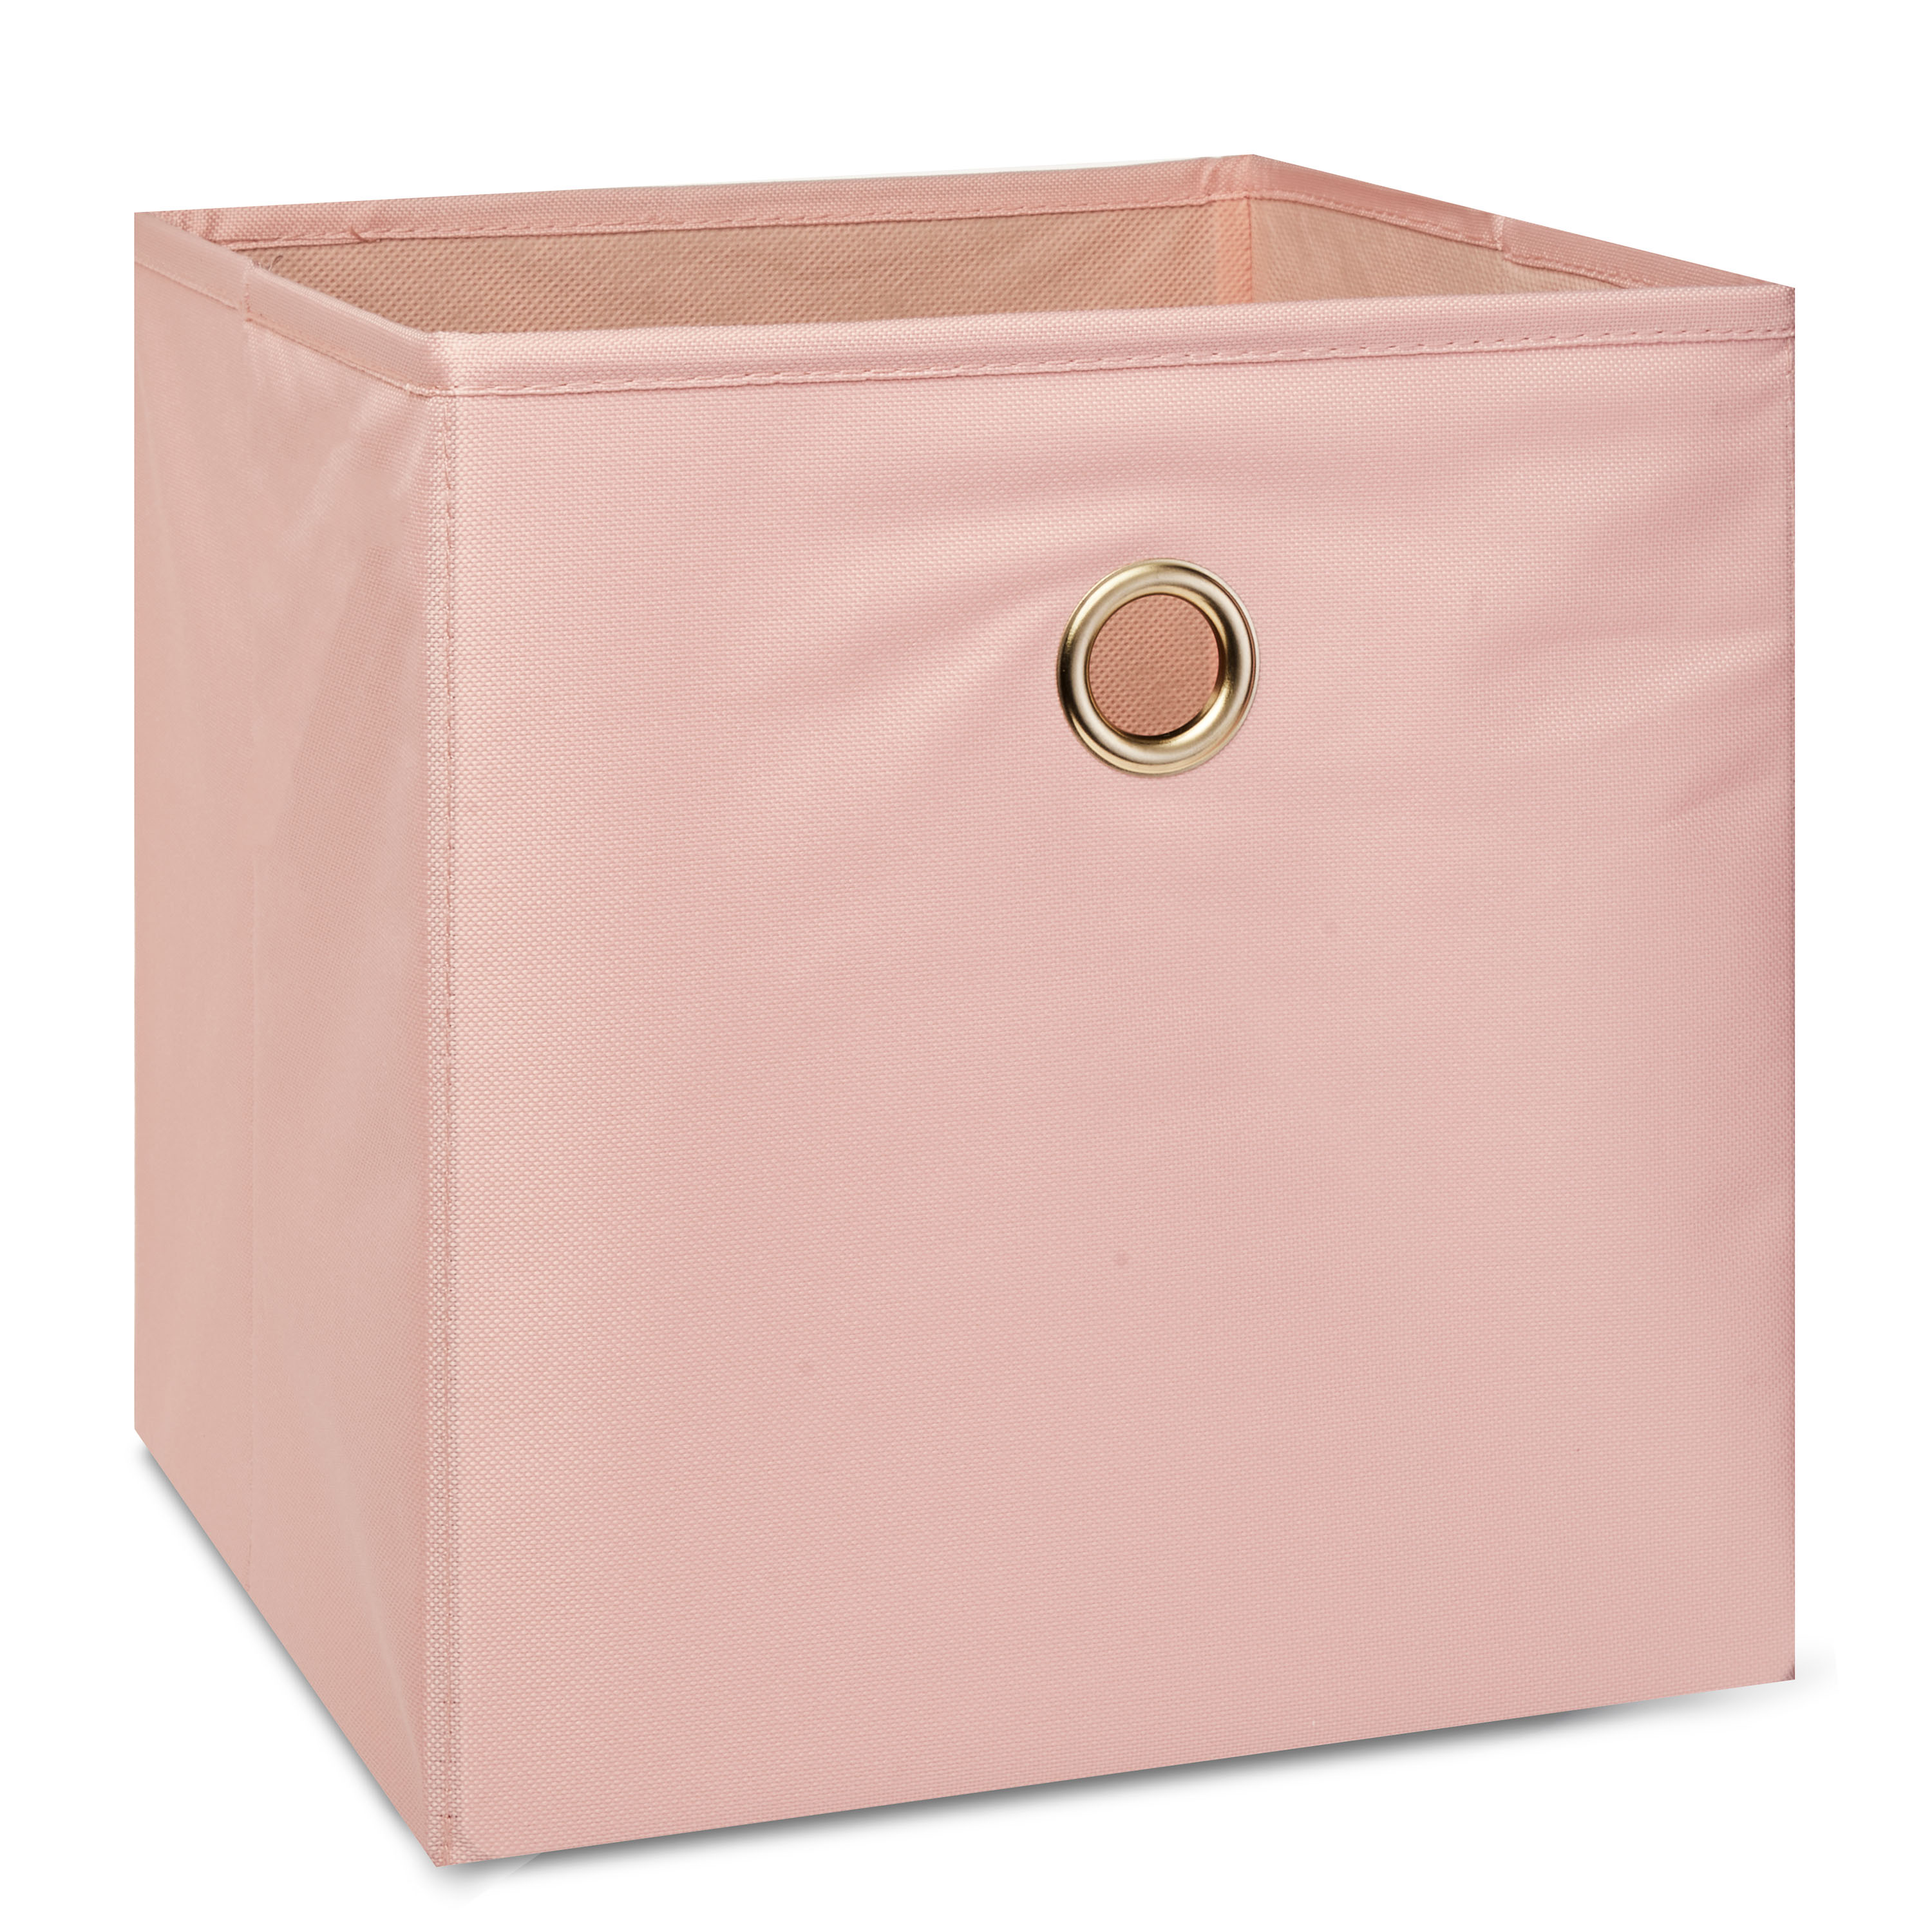 Mainstays Collapsible Fabric Cube Storage Bin, Pearl Blush